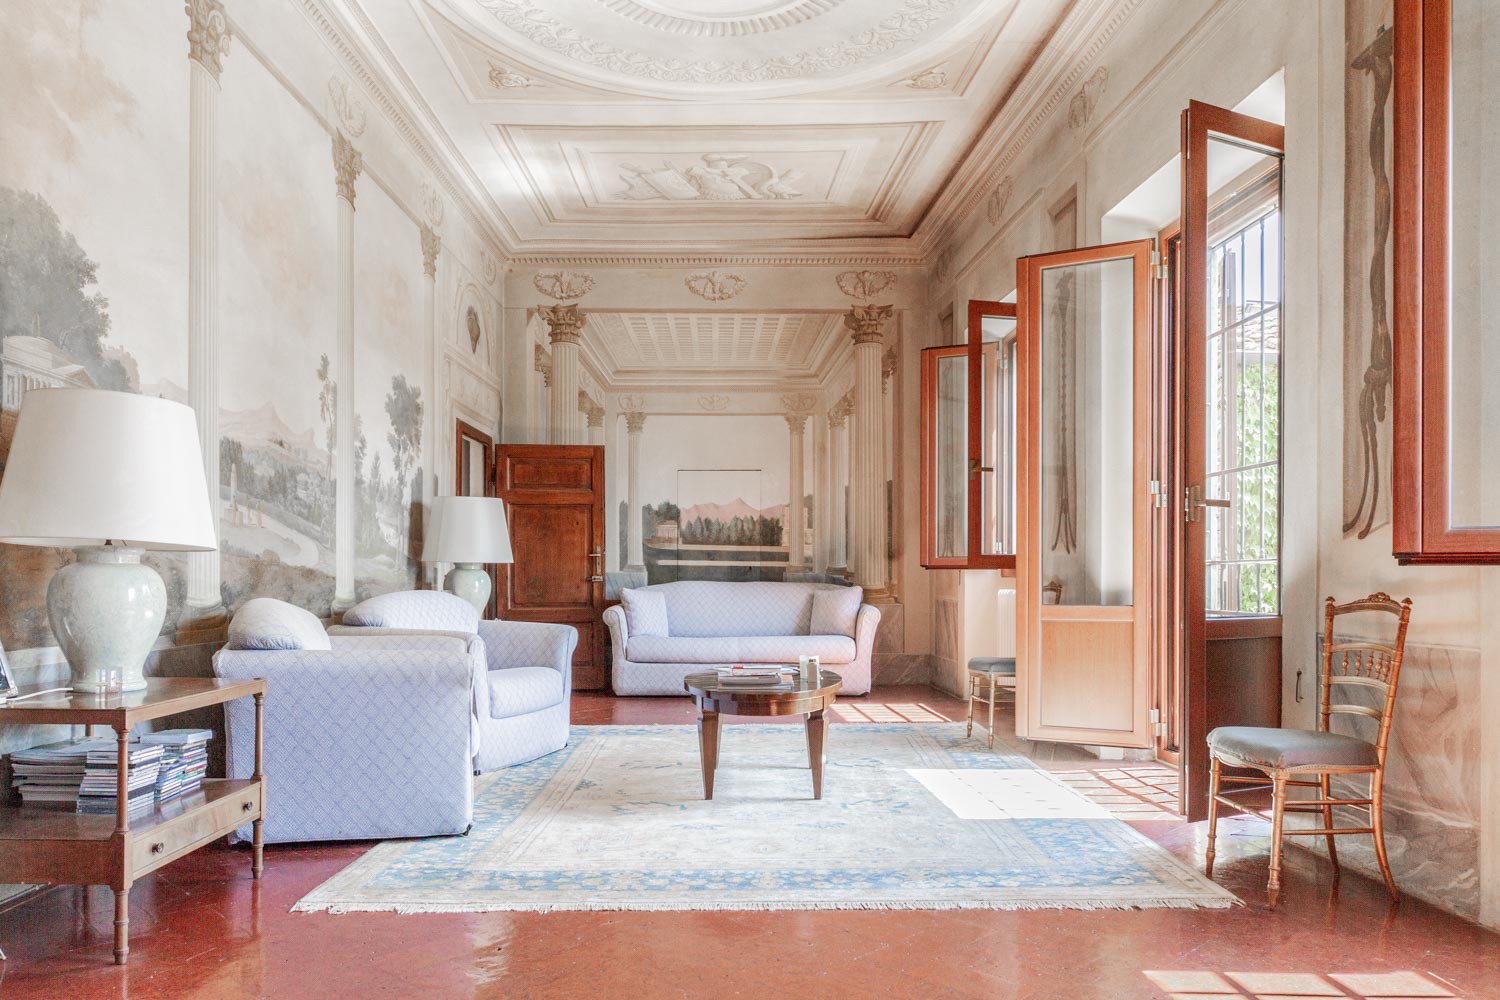 Tuscany Villas for Sale - Magnificent Property in Florence